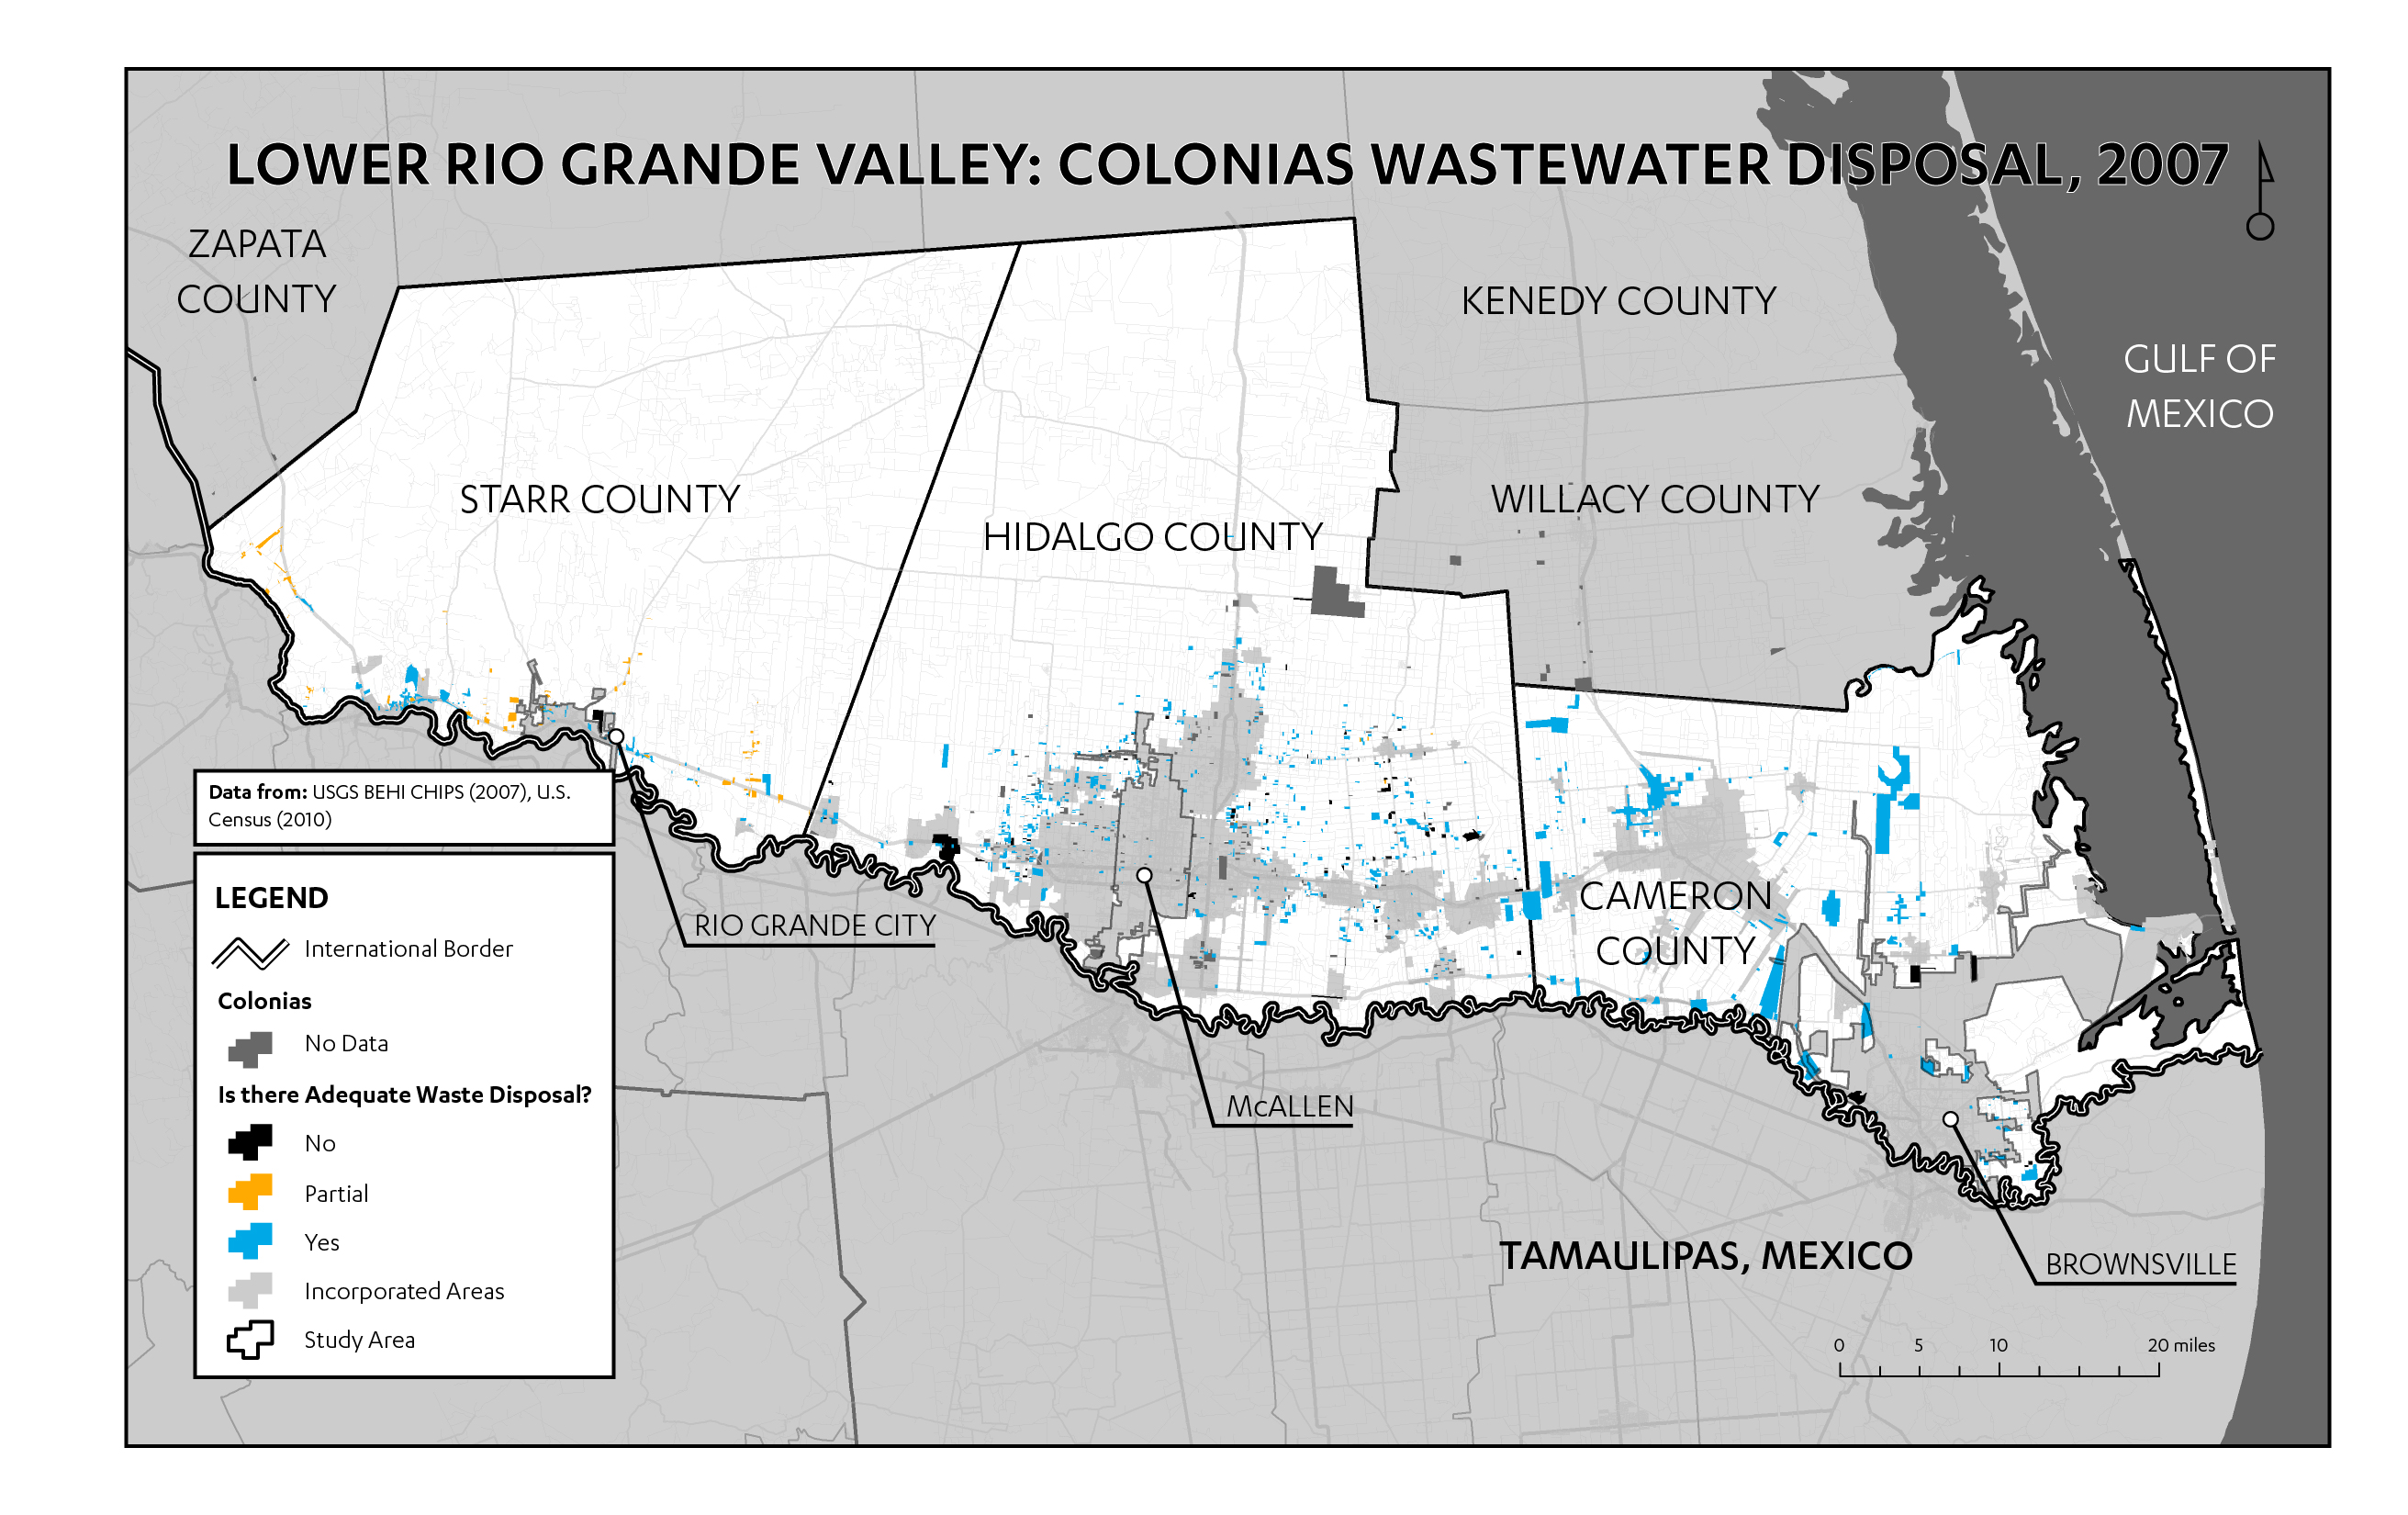 "Figure 9: Map of wastewater disposal in Lower Rio Grande Valley colonias (data from CHIPS 2007). According to CHIPS, problems with wastewater disposal are concentrated in Starr County, where most colonias settlements appear to have only partial access to adequate wastewater disposal (shown as orange). Across Hidalgo and Cameron Counties, access to wastewater disposal is more unequally distributed. In these two counties, colonias are marked as having either adequate wastewater or no wastewater disposal at all. This clear divide between ""served"" and ""unserved"" begins to suggest different approaches to colonias utilities improvement at the county level."